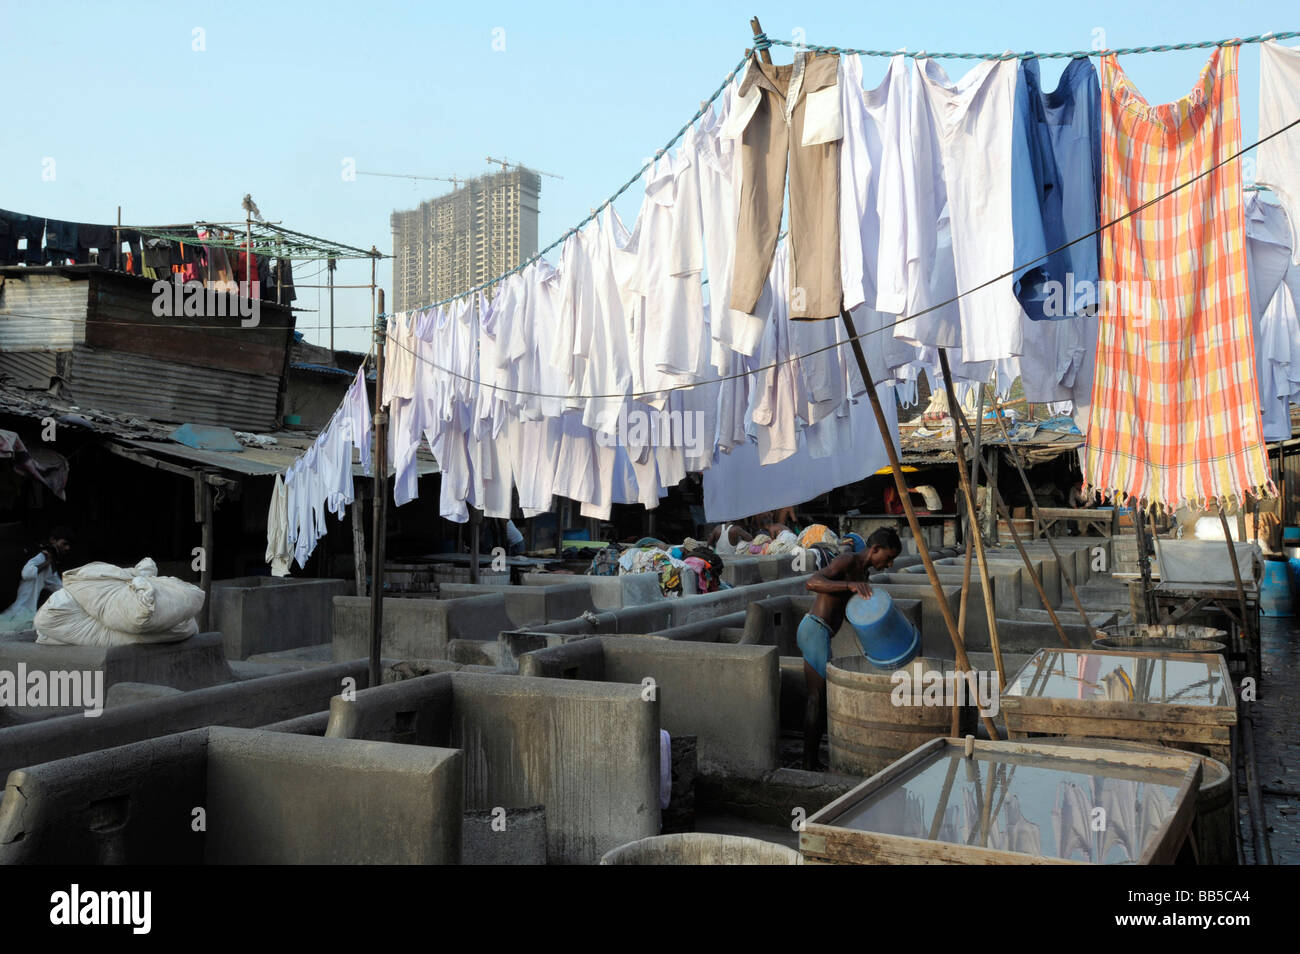 Laundry hanging out to dry in Dhobi Ghats, Mumbai, India - Stock Image